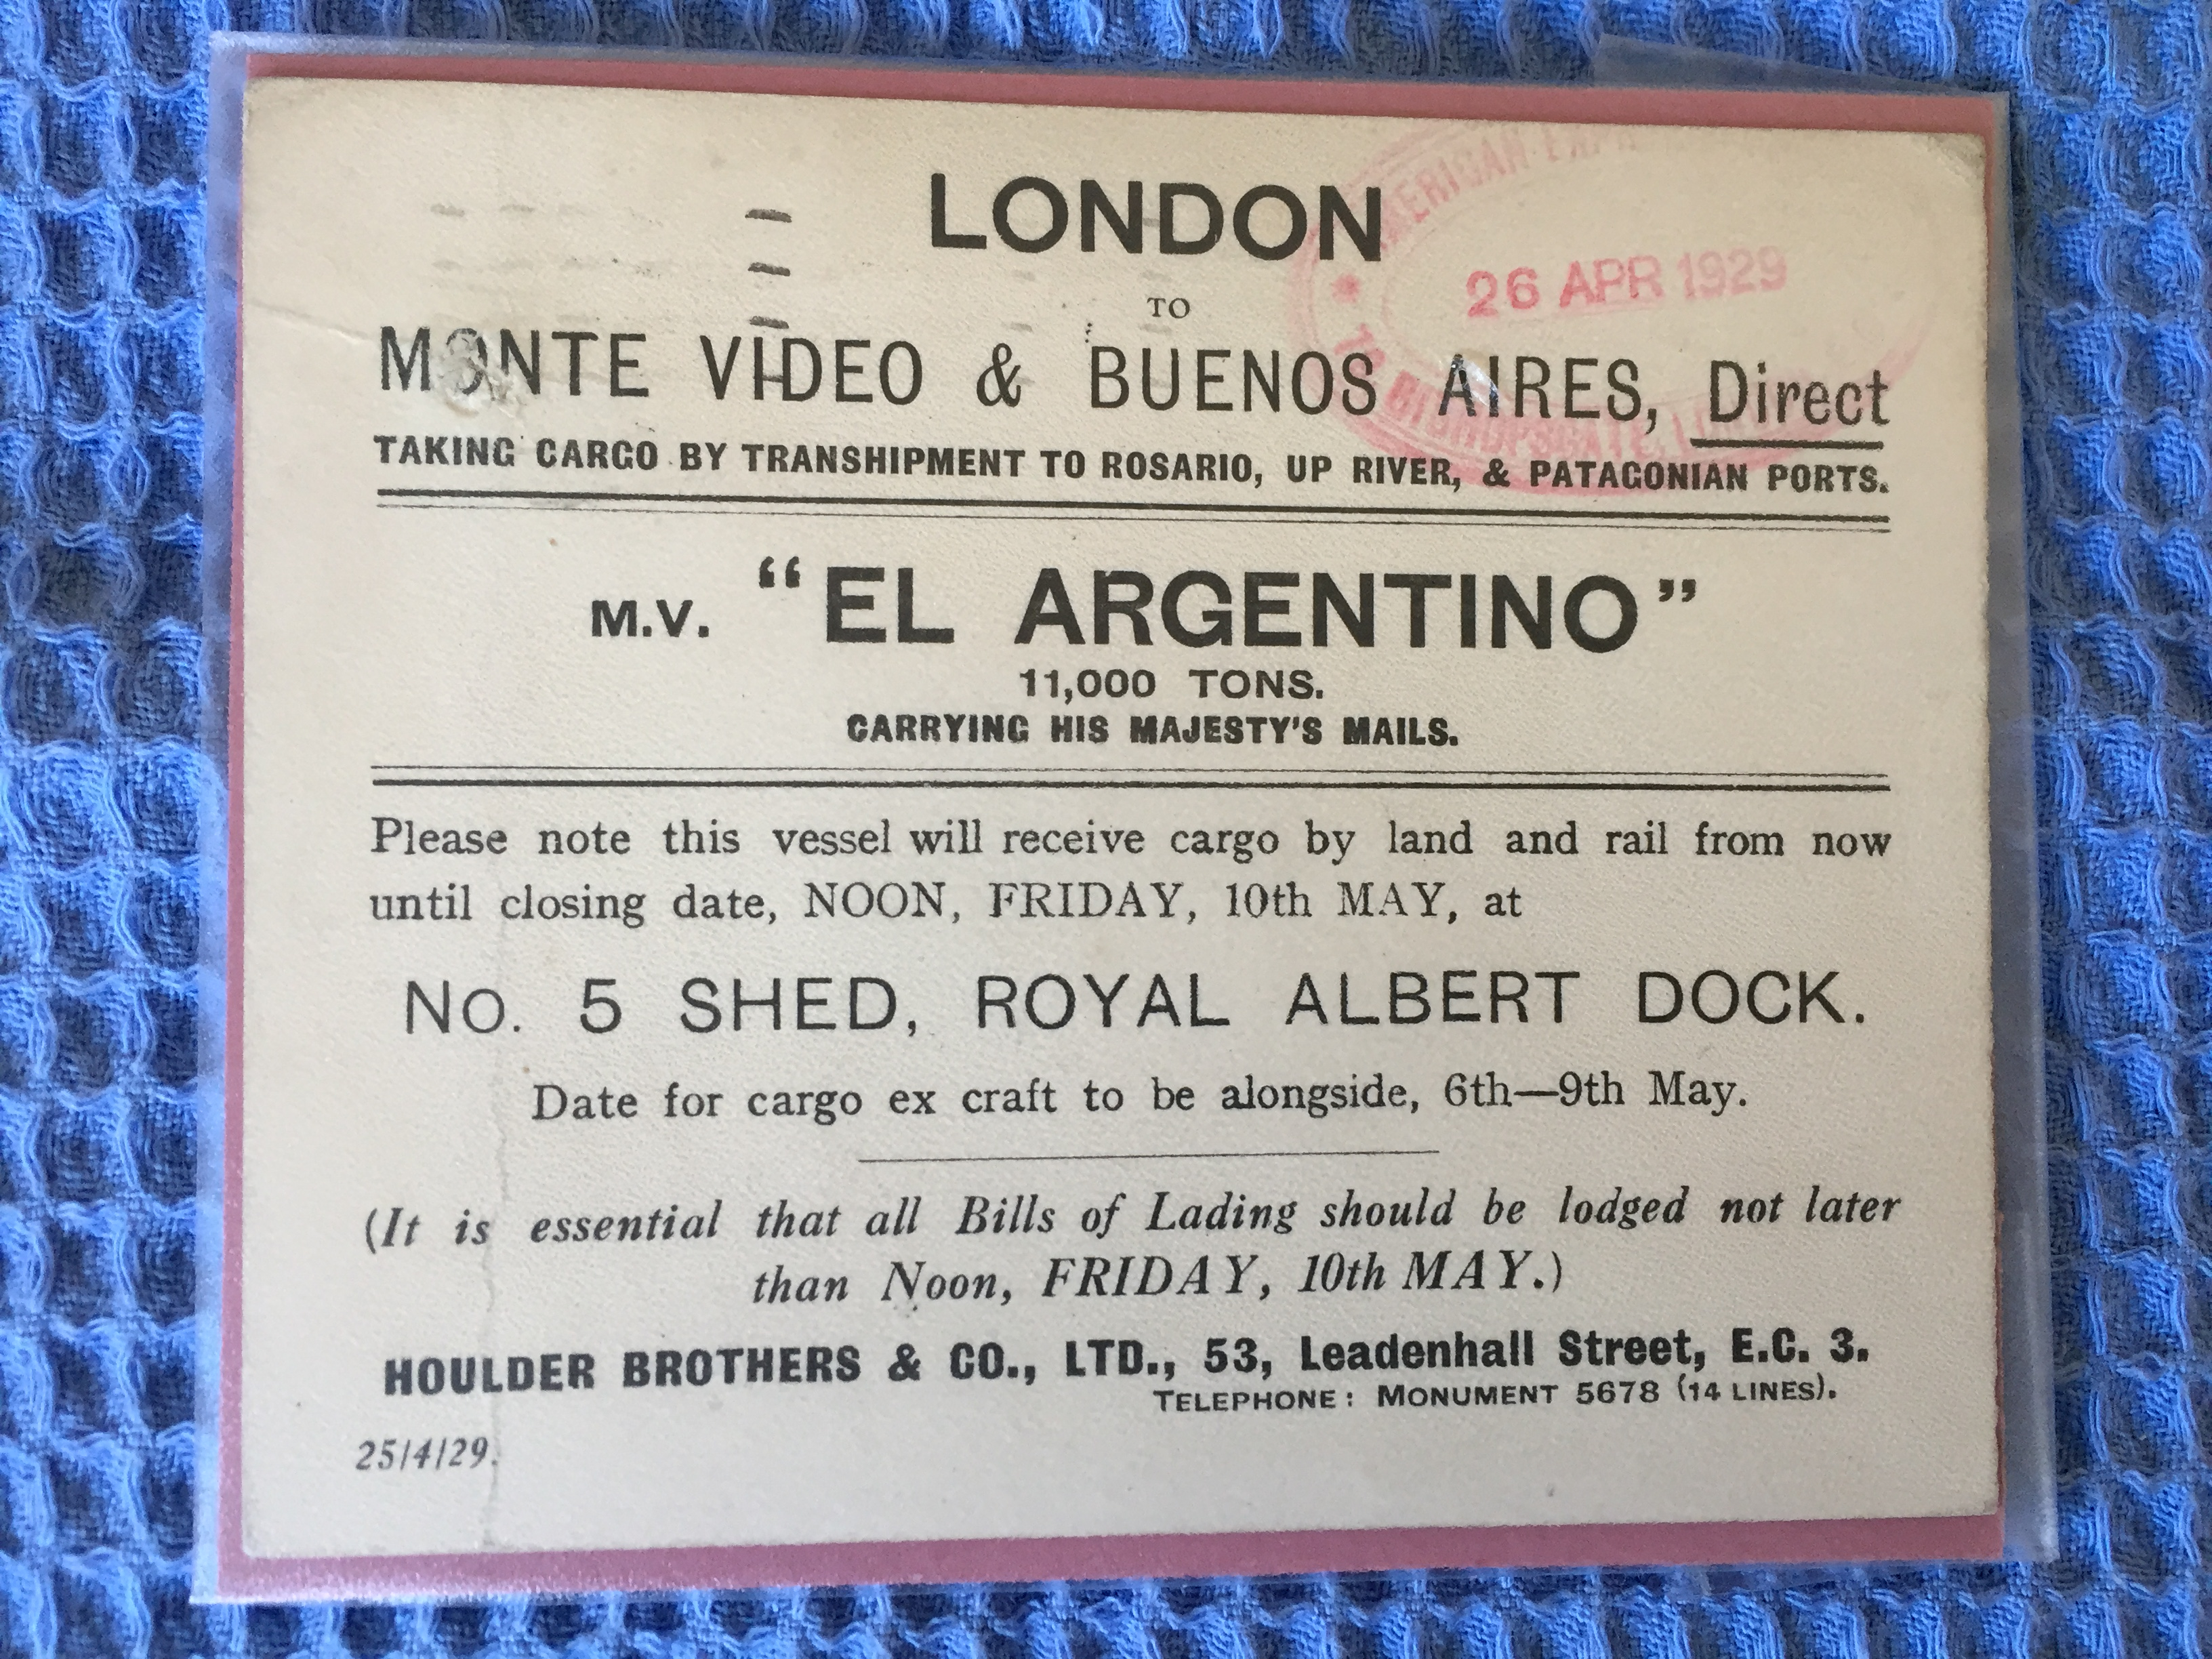 BILL OF LADING FOR THE MAIL VESSEL THE EL ARGENTINO DATED 1929